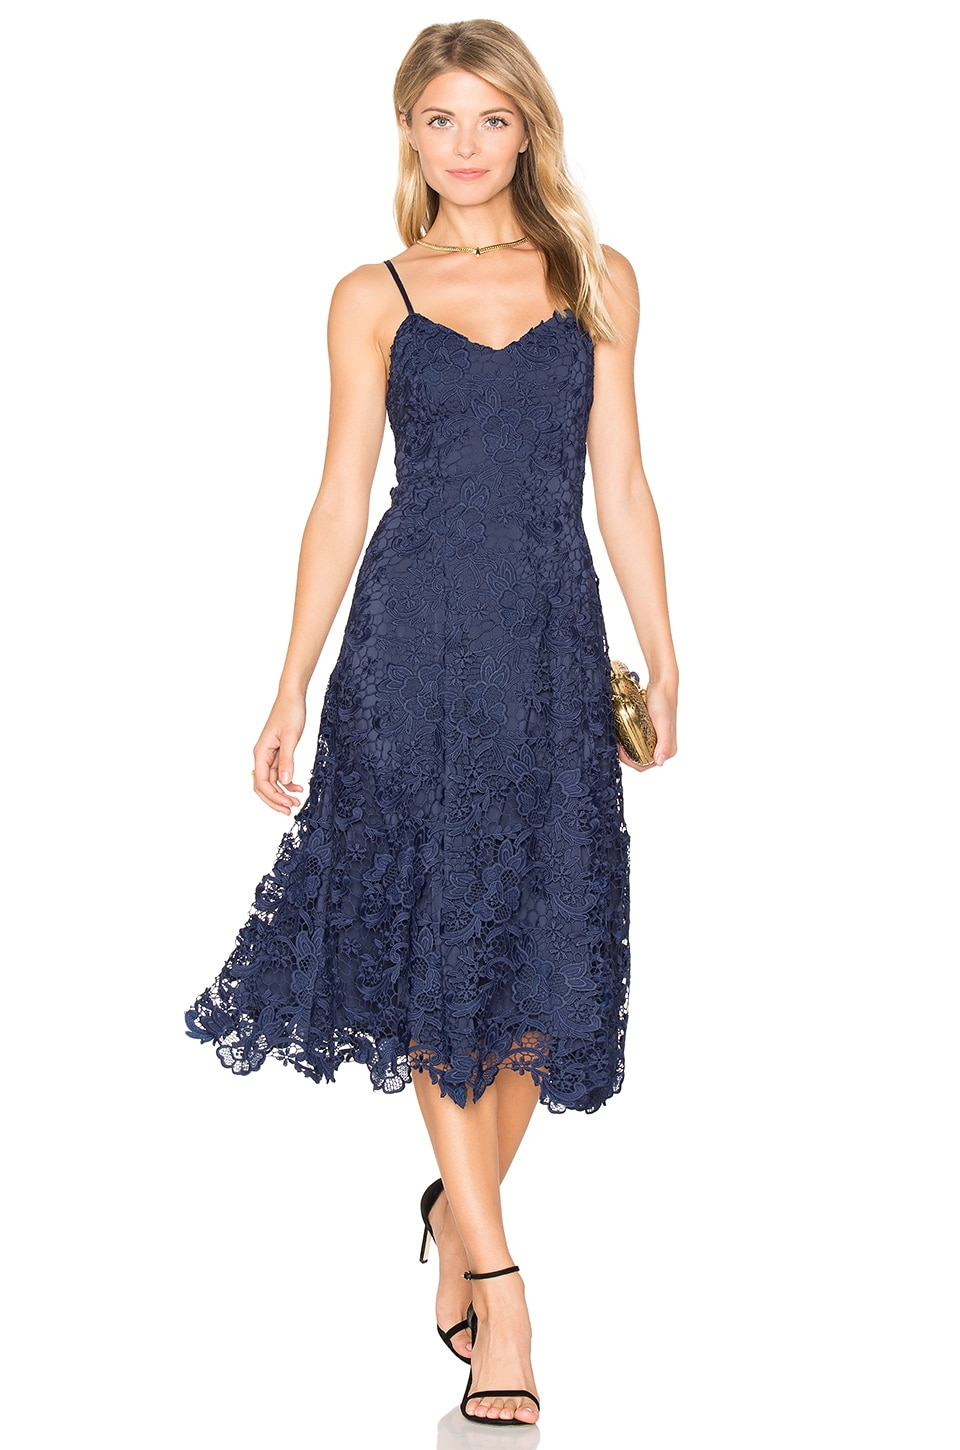 buy Naomi Flare Dress by Alice + Olivia dresses online shopping